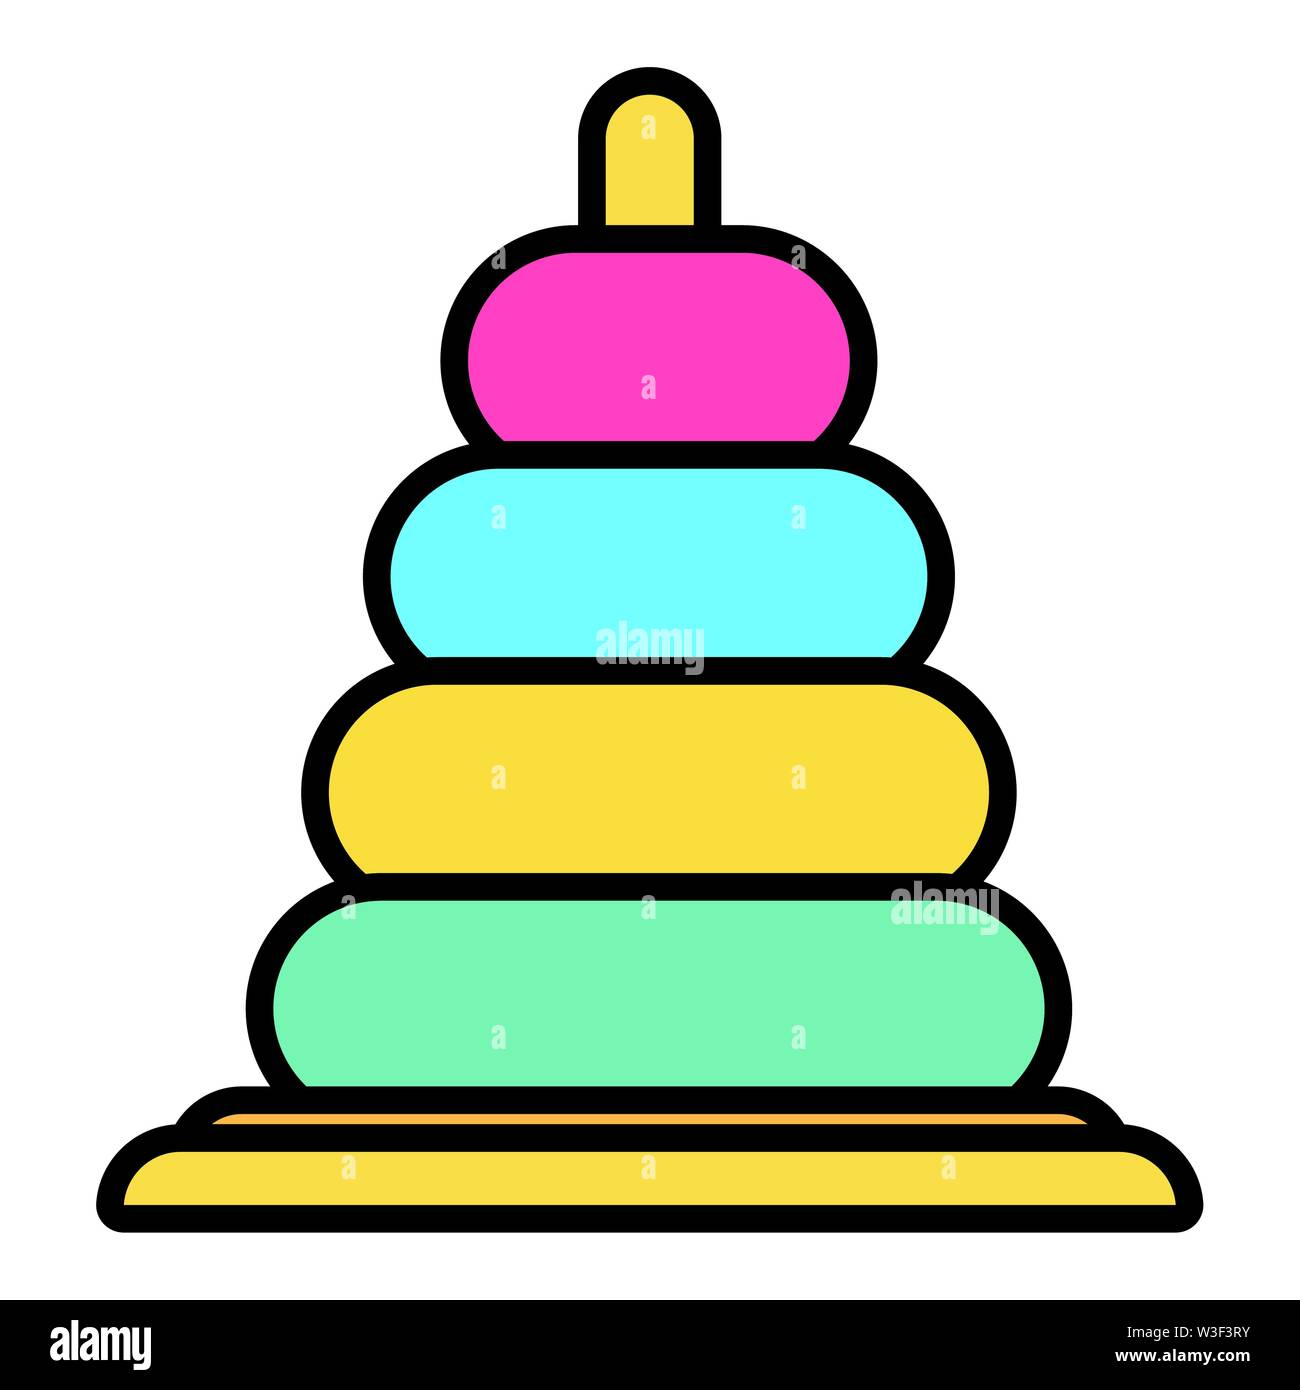 colors rings pyramid toy icon vector illustration design - Stock Image